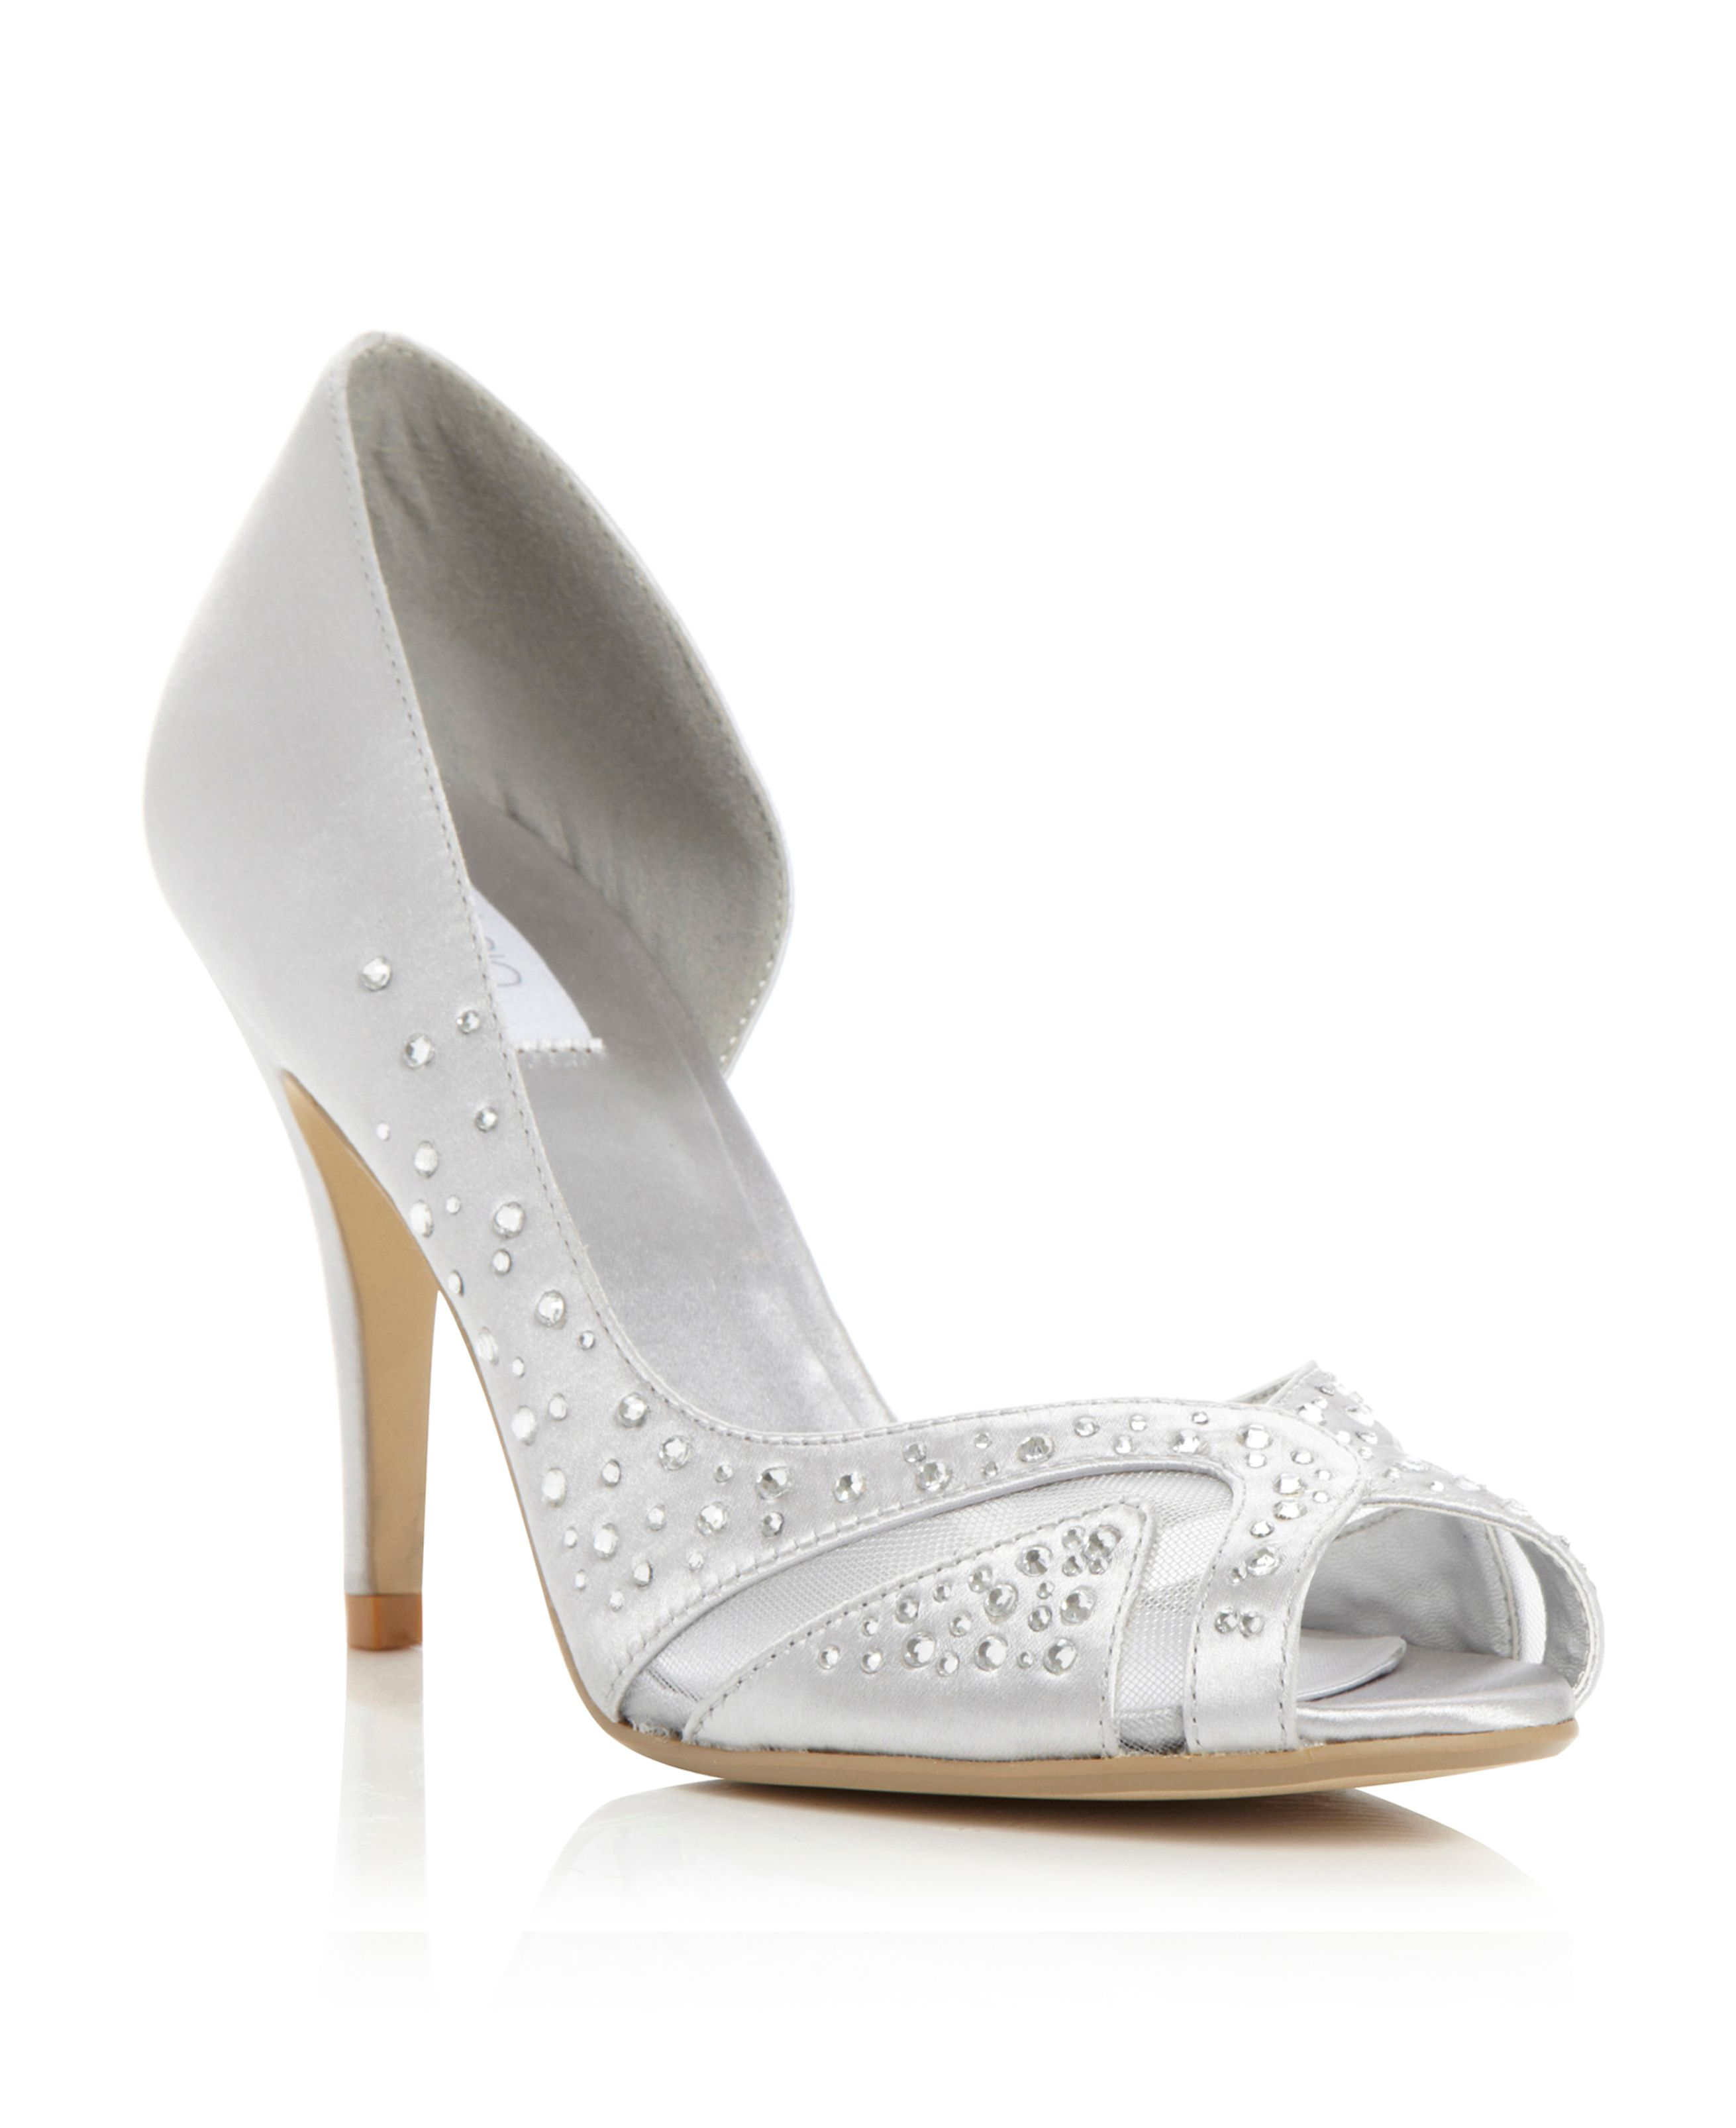 Daisee diamante mesh upper court shoes